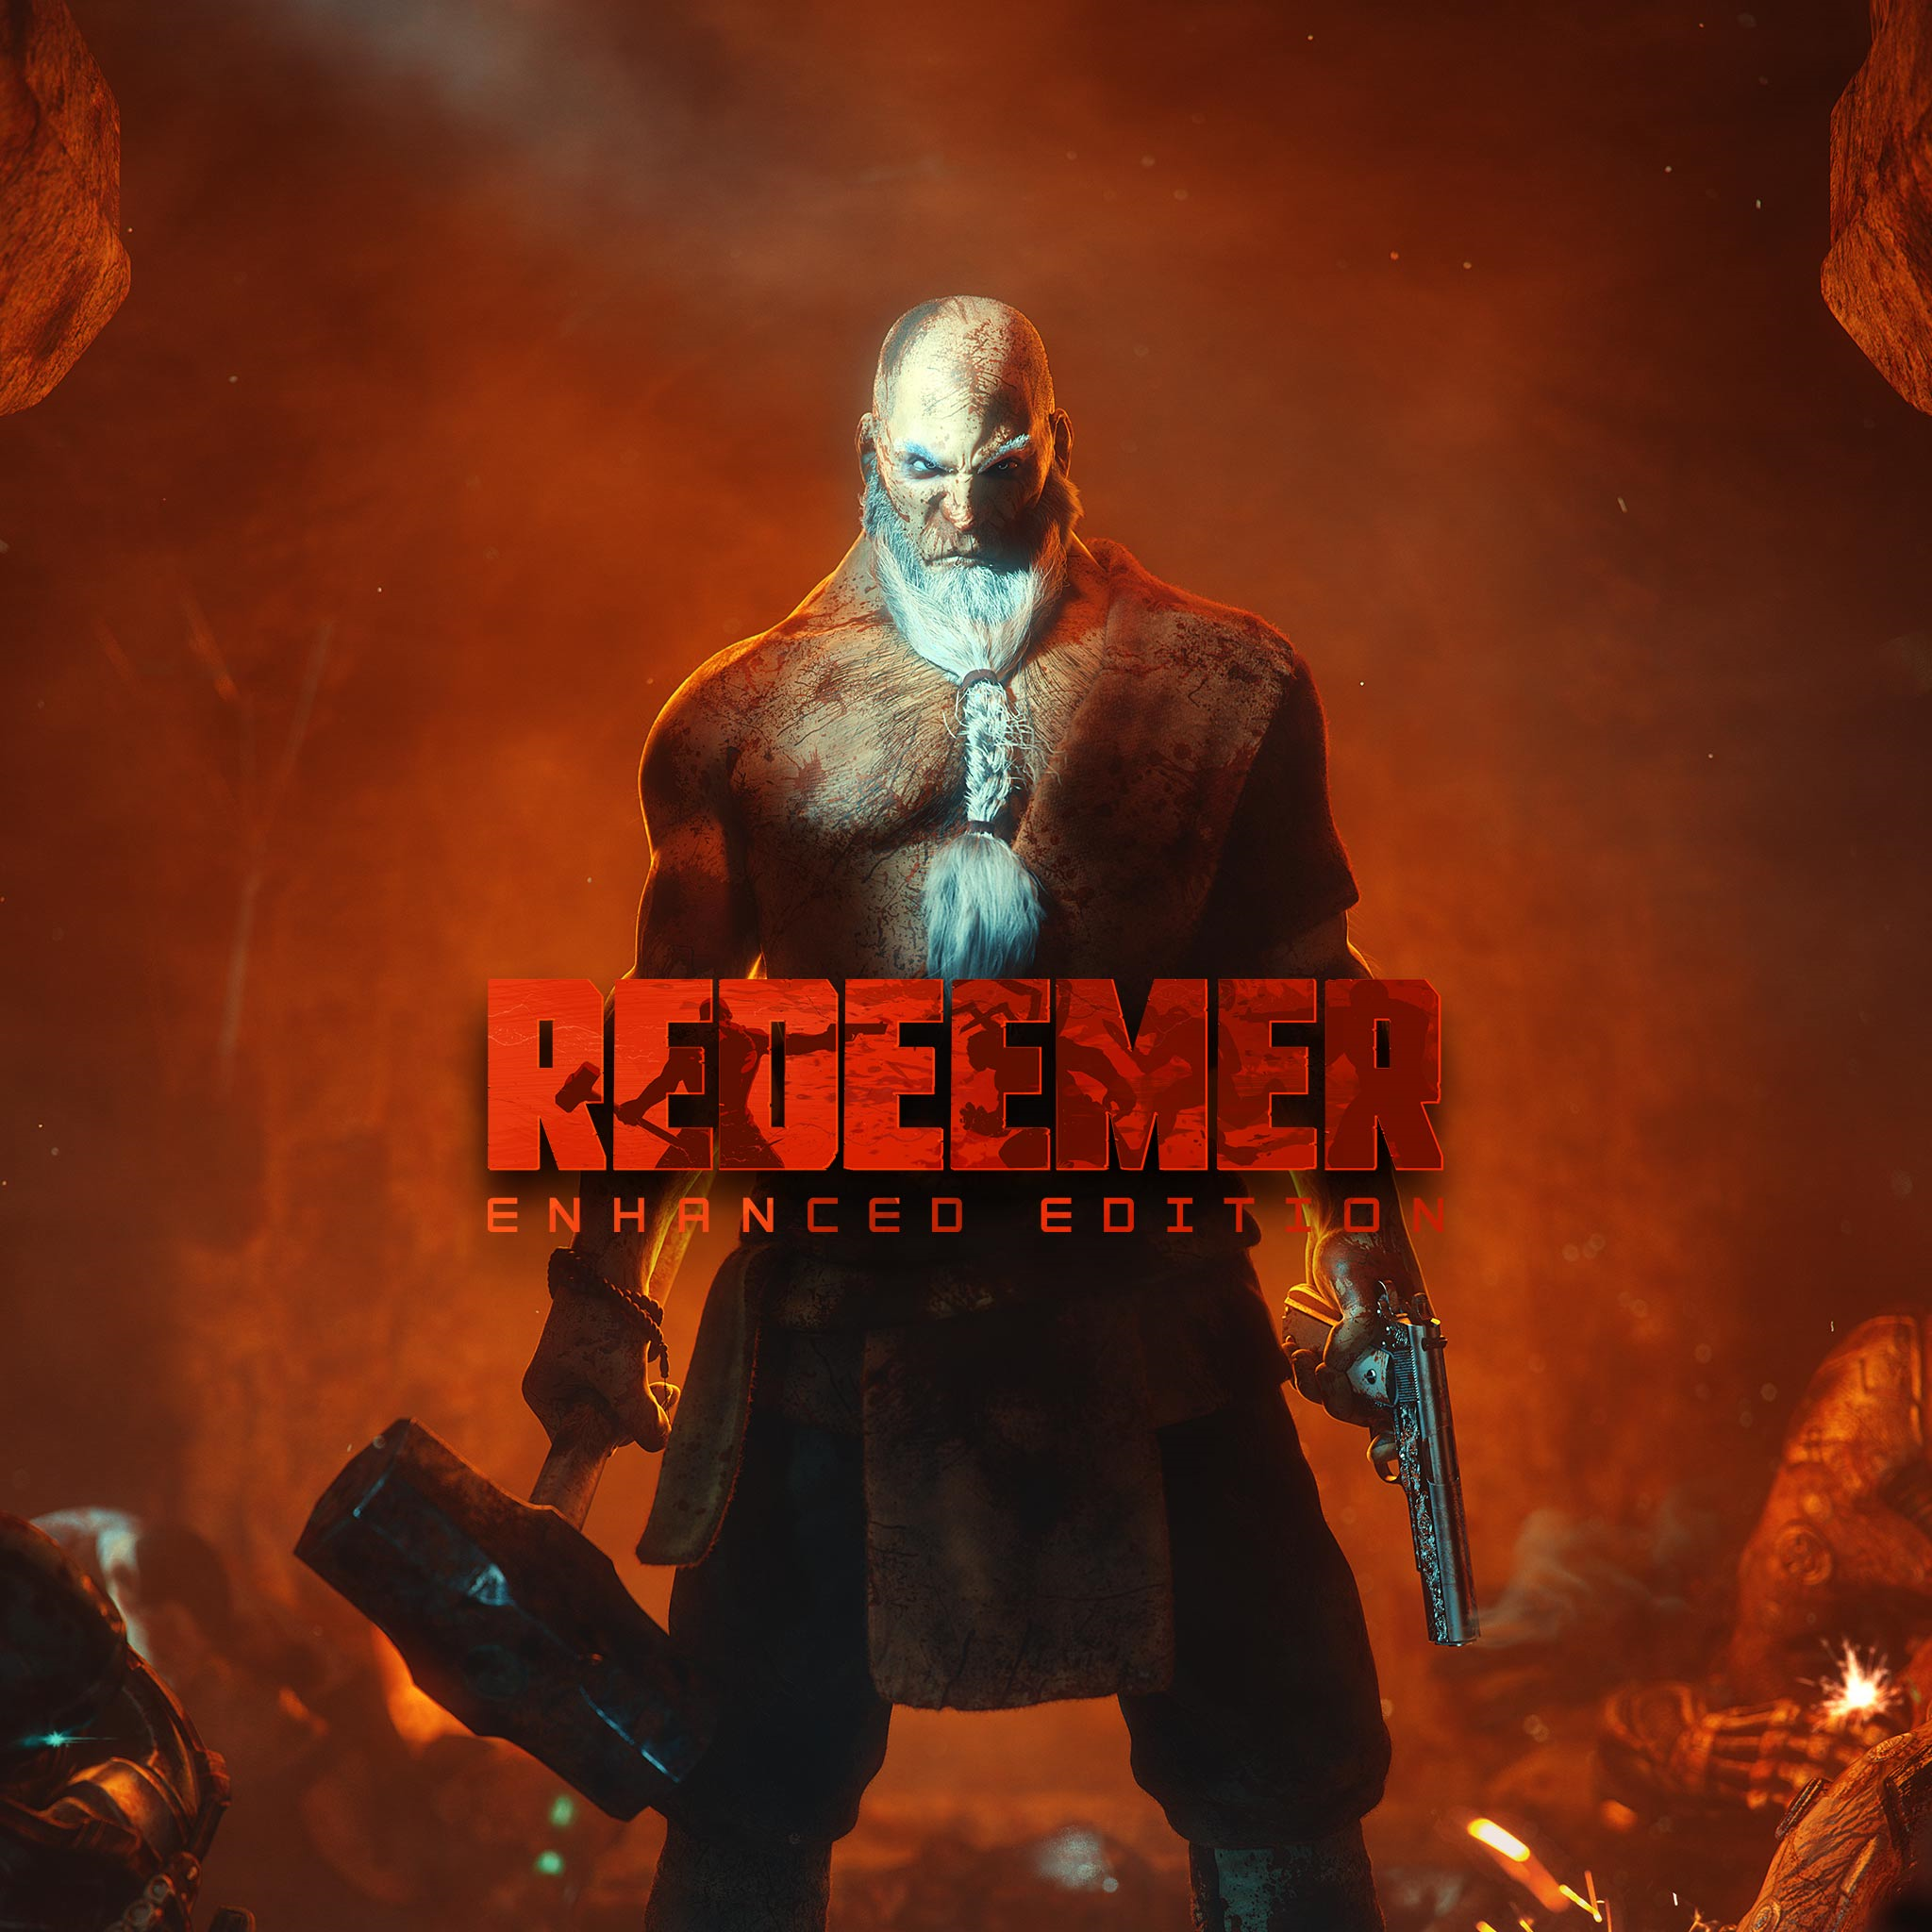 Thumbnail of Redeemer Enhanced Edition on PS4